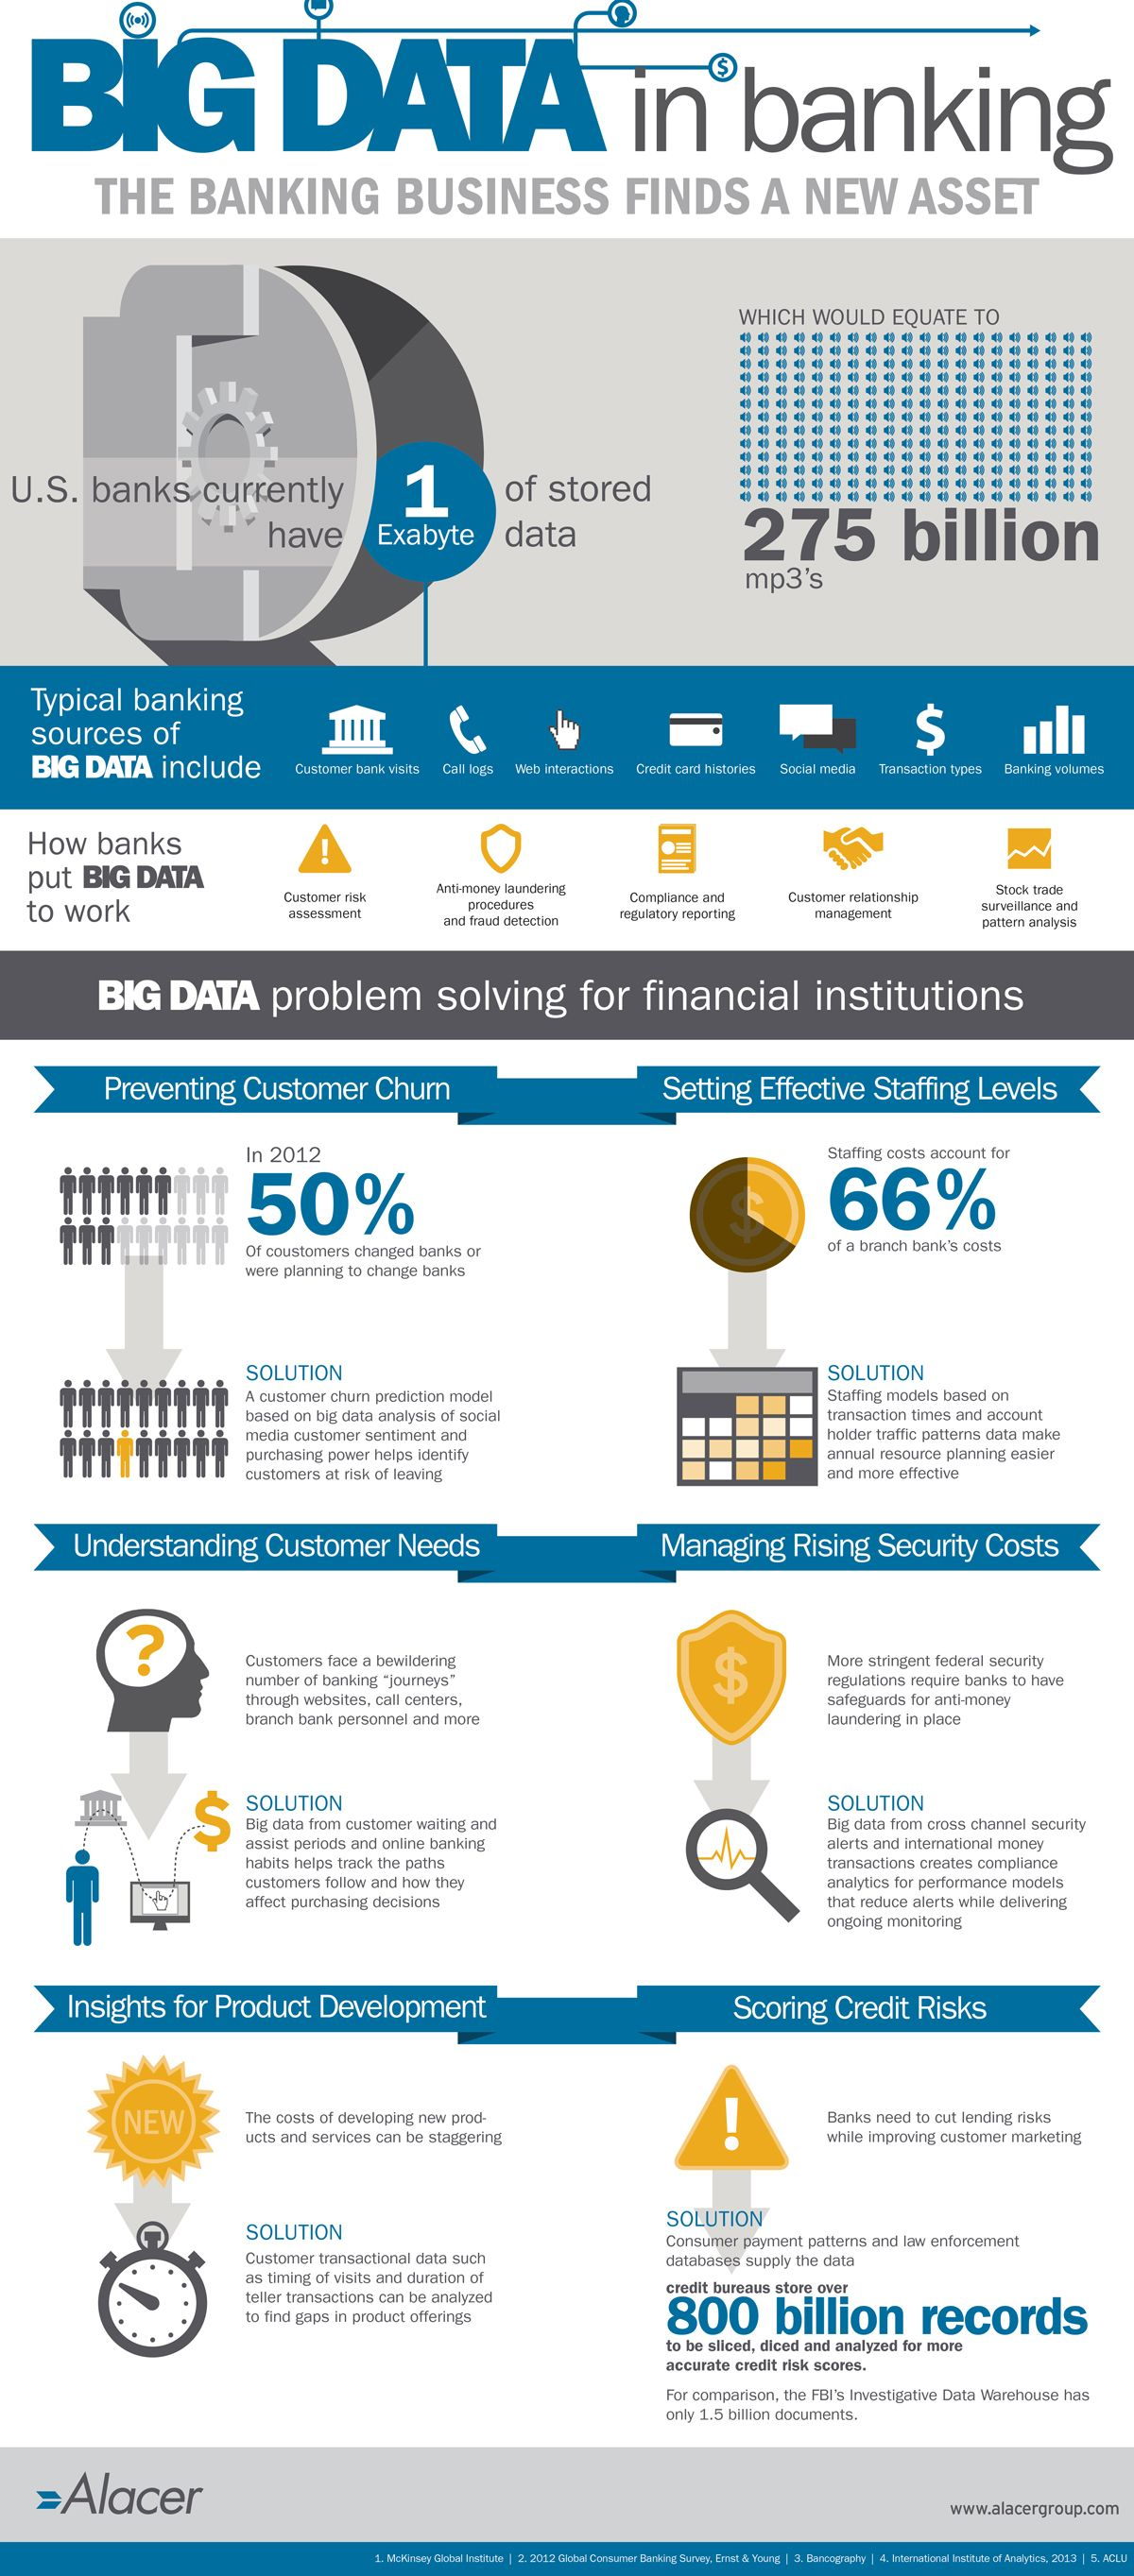 Six Tips for Formulating a Business Plan for Big Data